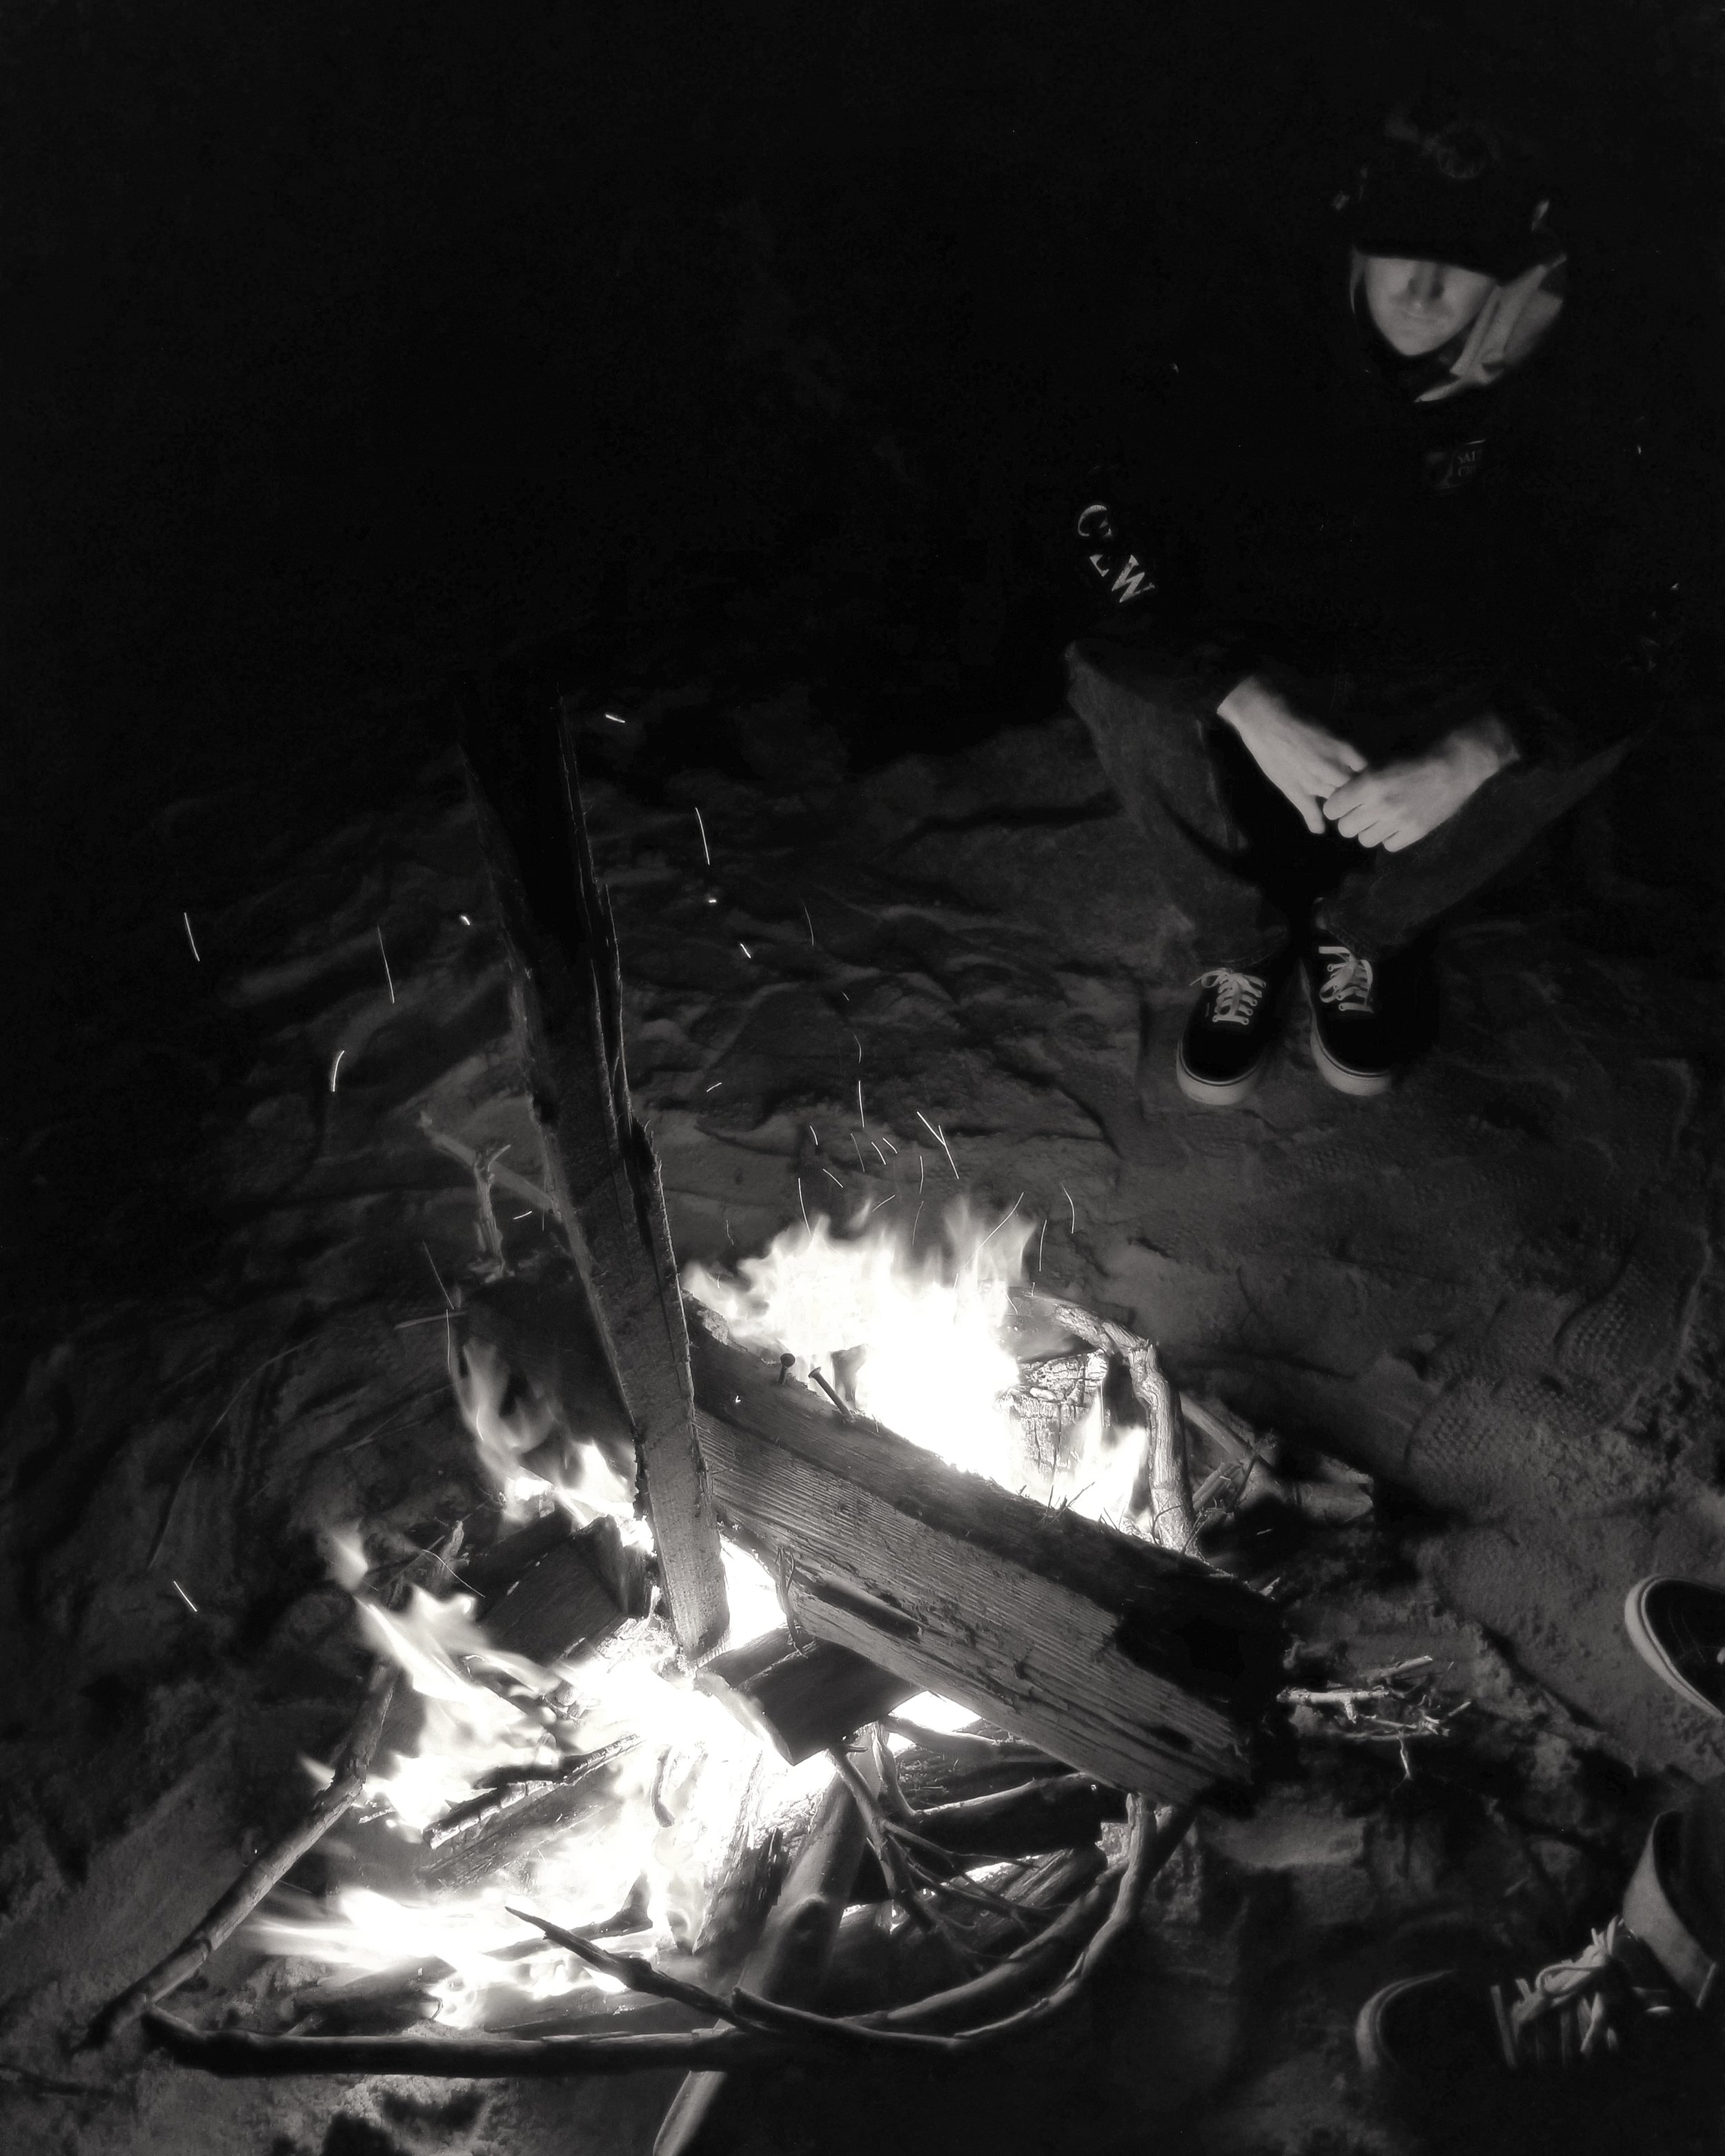 Fire with 2 of my True Druid brothers ( @druid_dude and @ny_hunt_addict on Instagram )